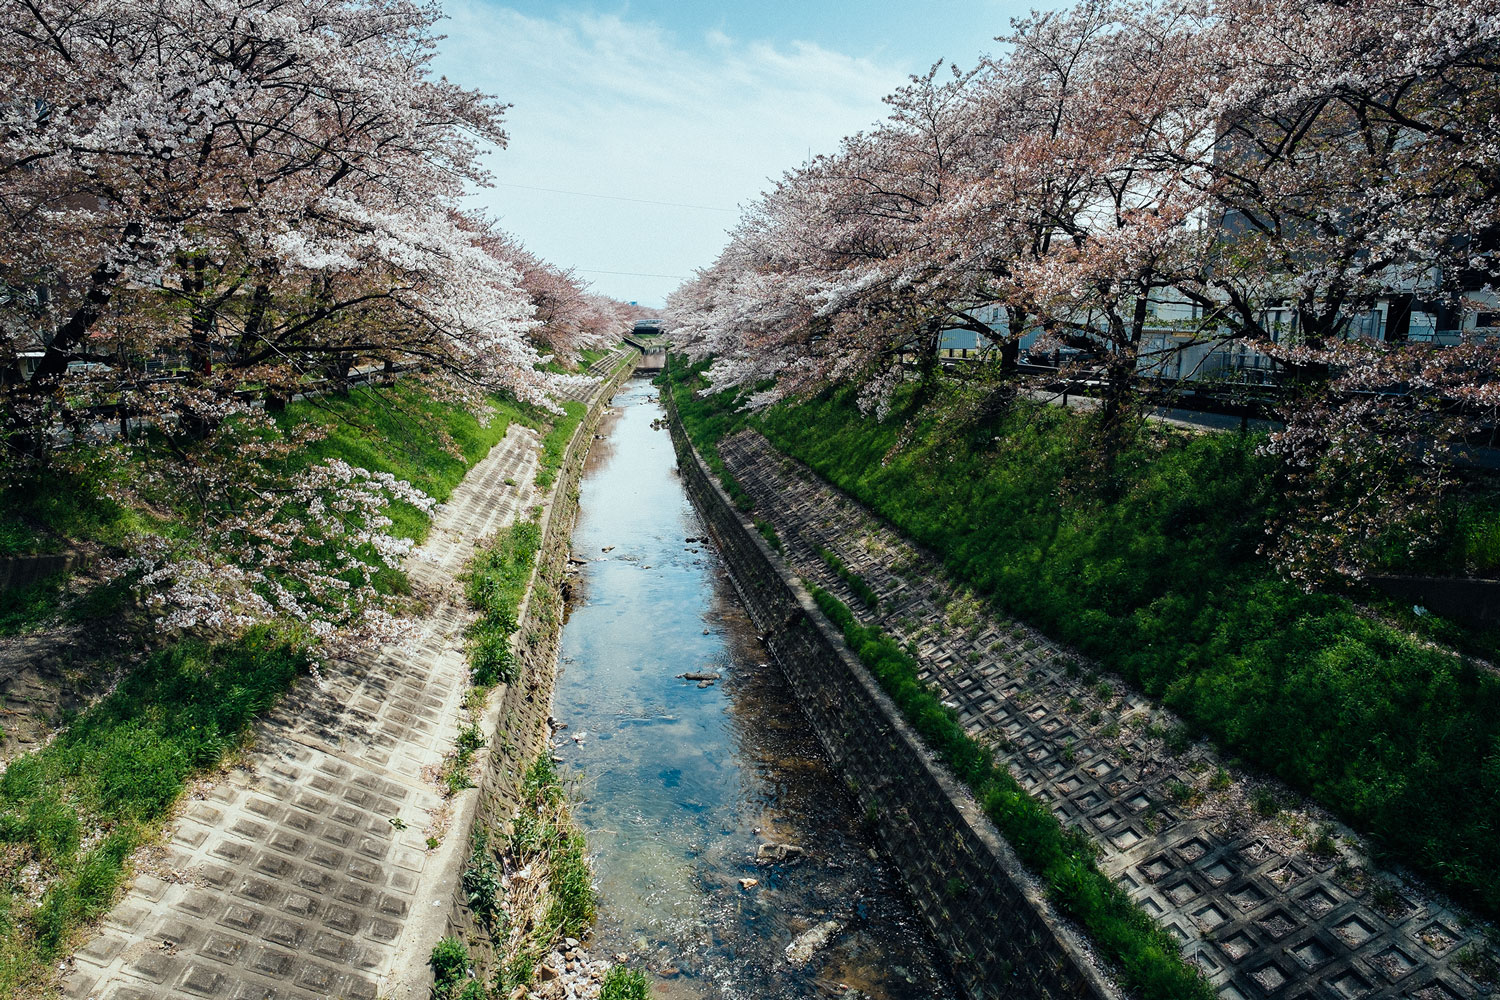 Cherry blossoms in Nara